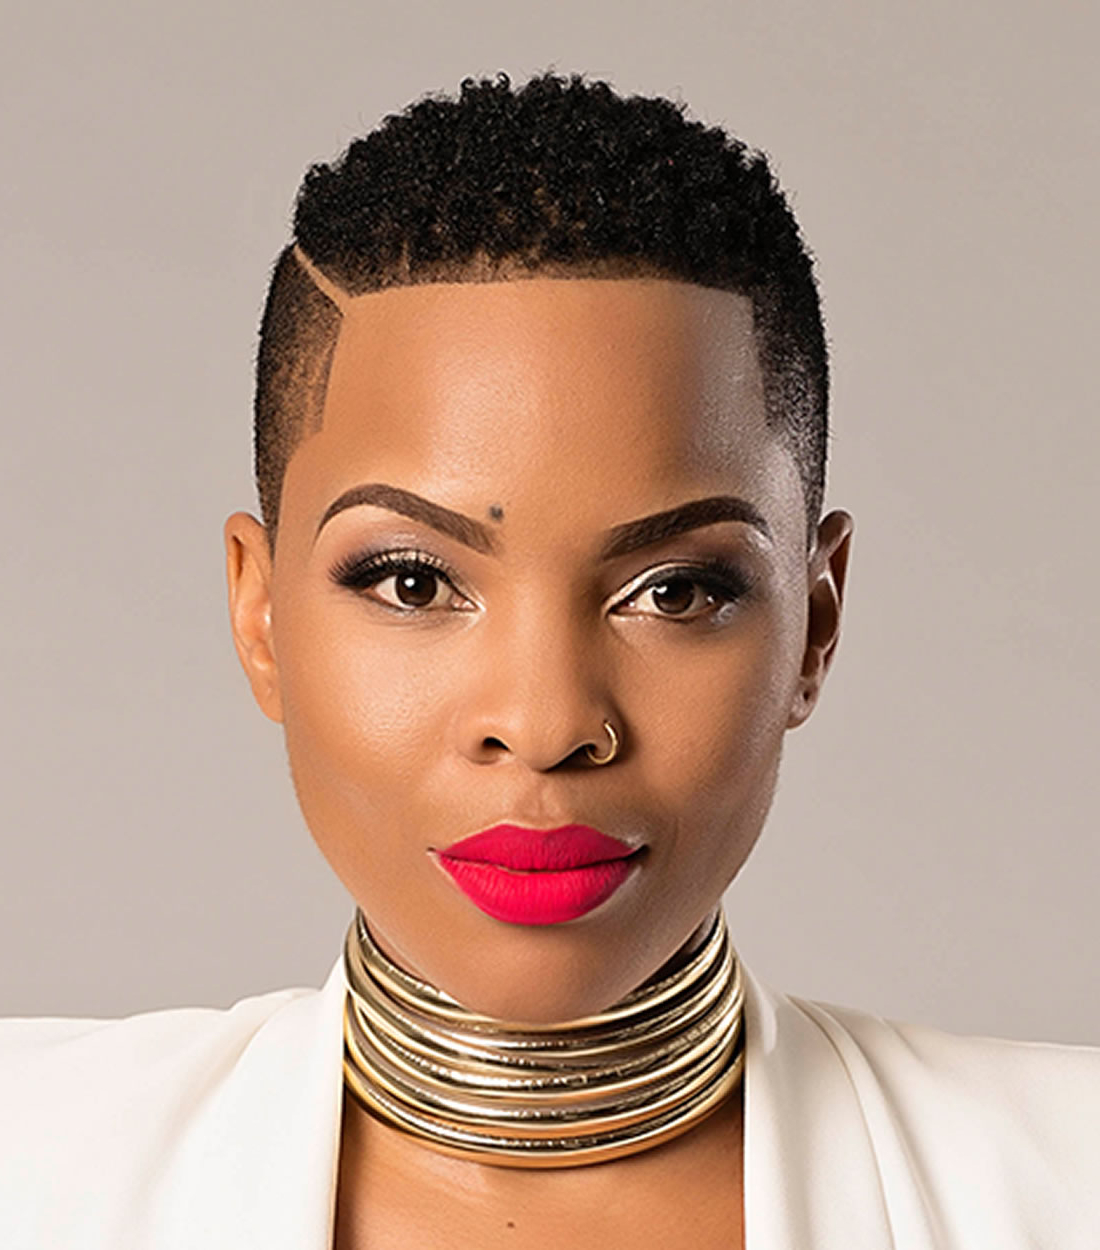 32 Exquisite African American Short Haircuts And Hairstyles For 2018 Regarding Short Haircuts For Black Women With Round Faces (View 6 of 25)